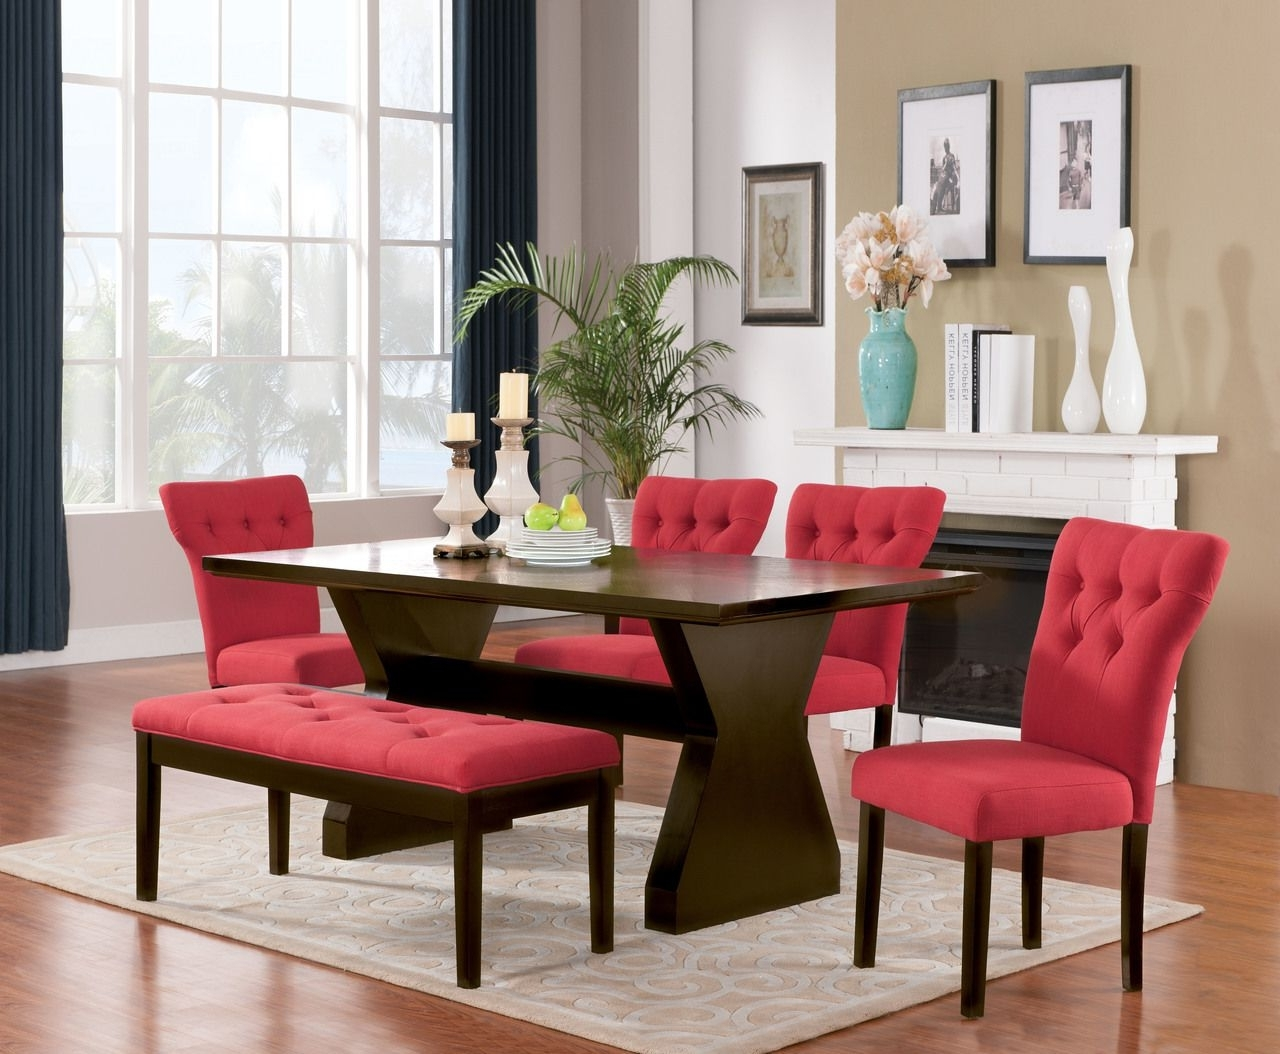 Pinthe Palms Furniture On 10 11 2017 The Palms Furniture Inside Well Known Red Dining Table Sets (View 14 of 25)